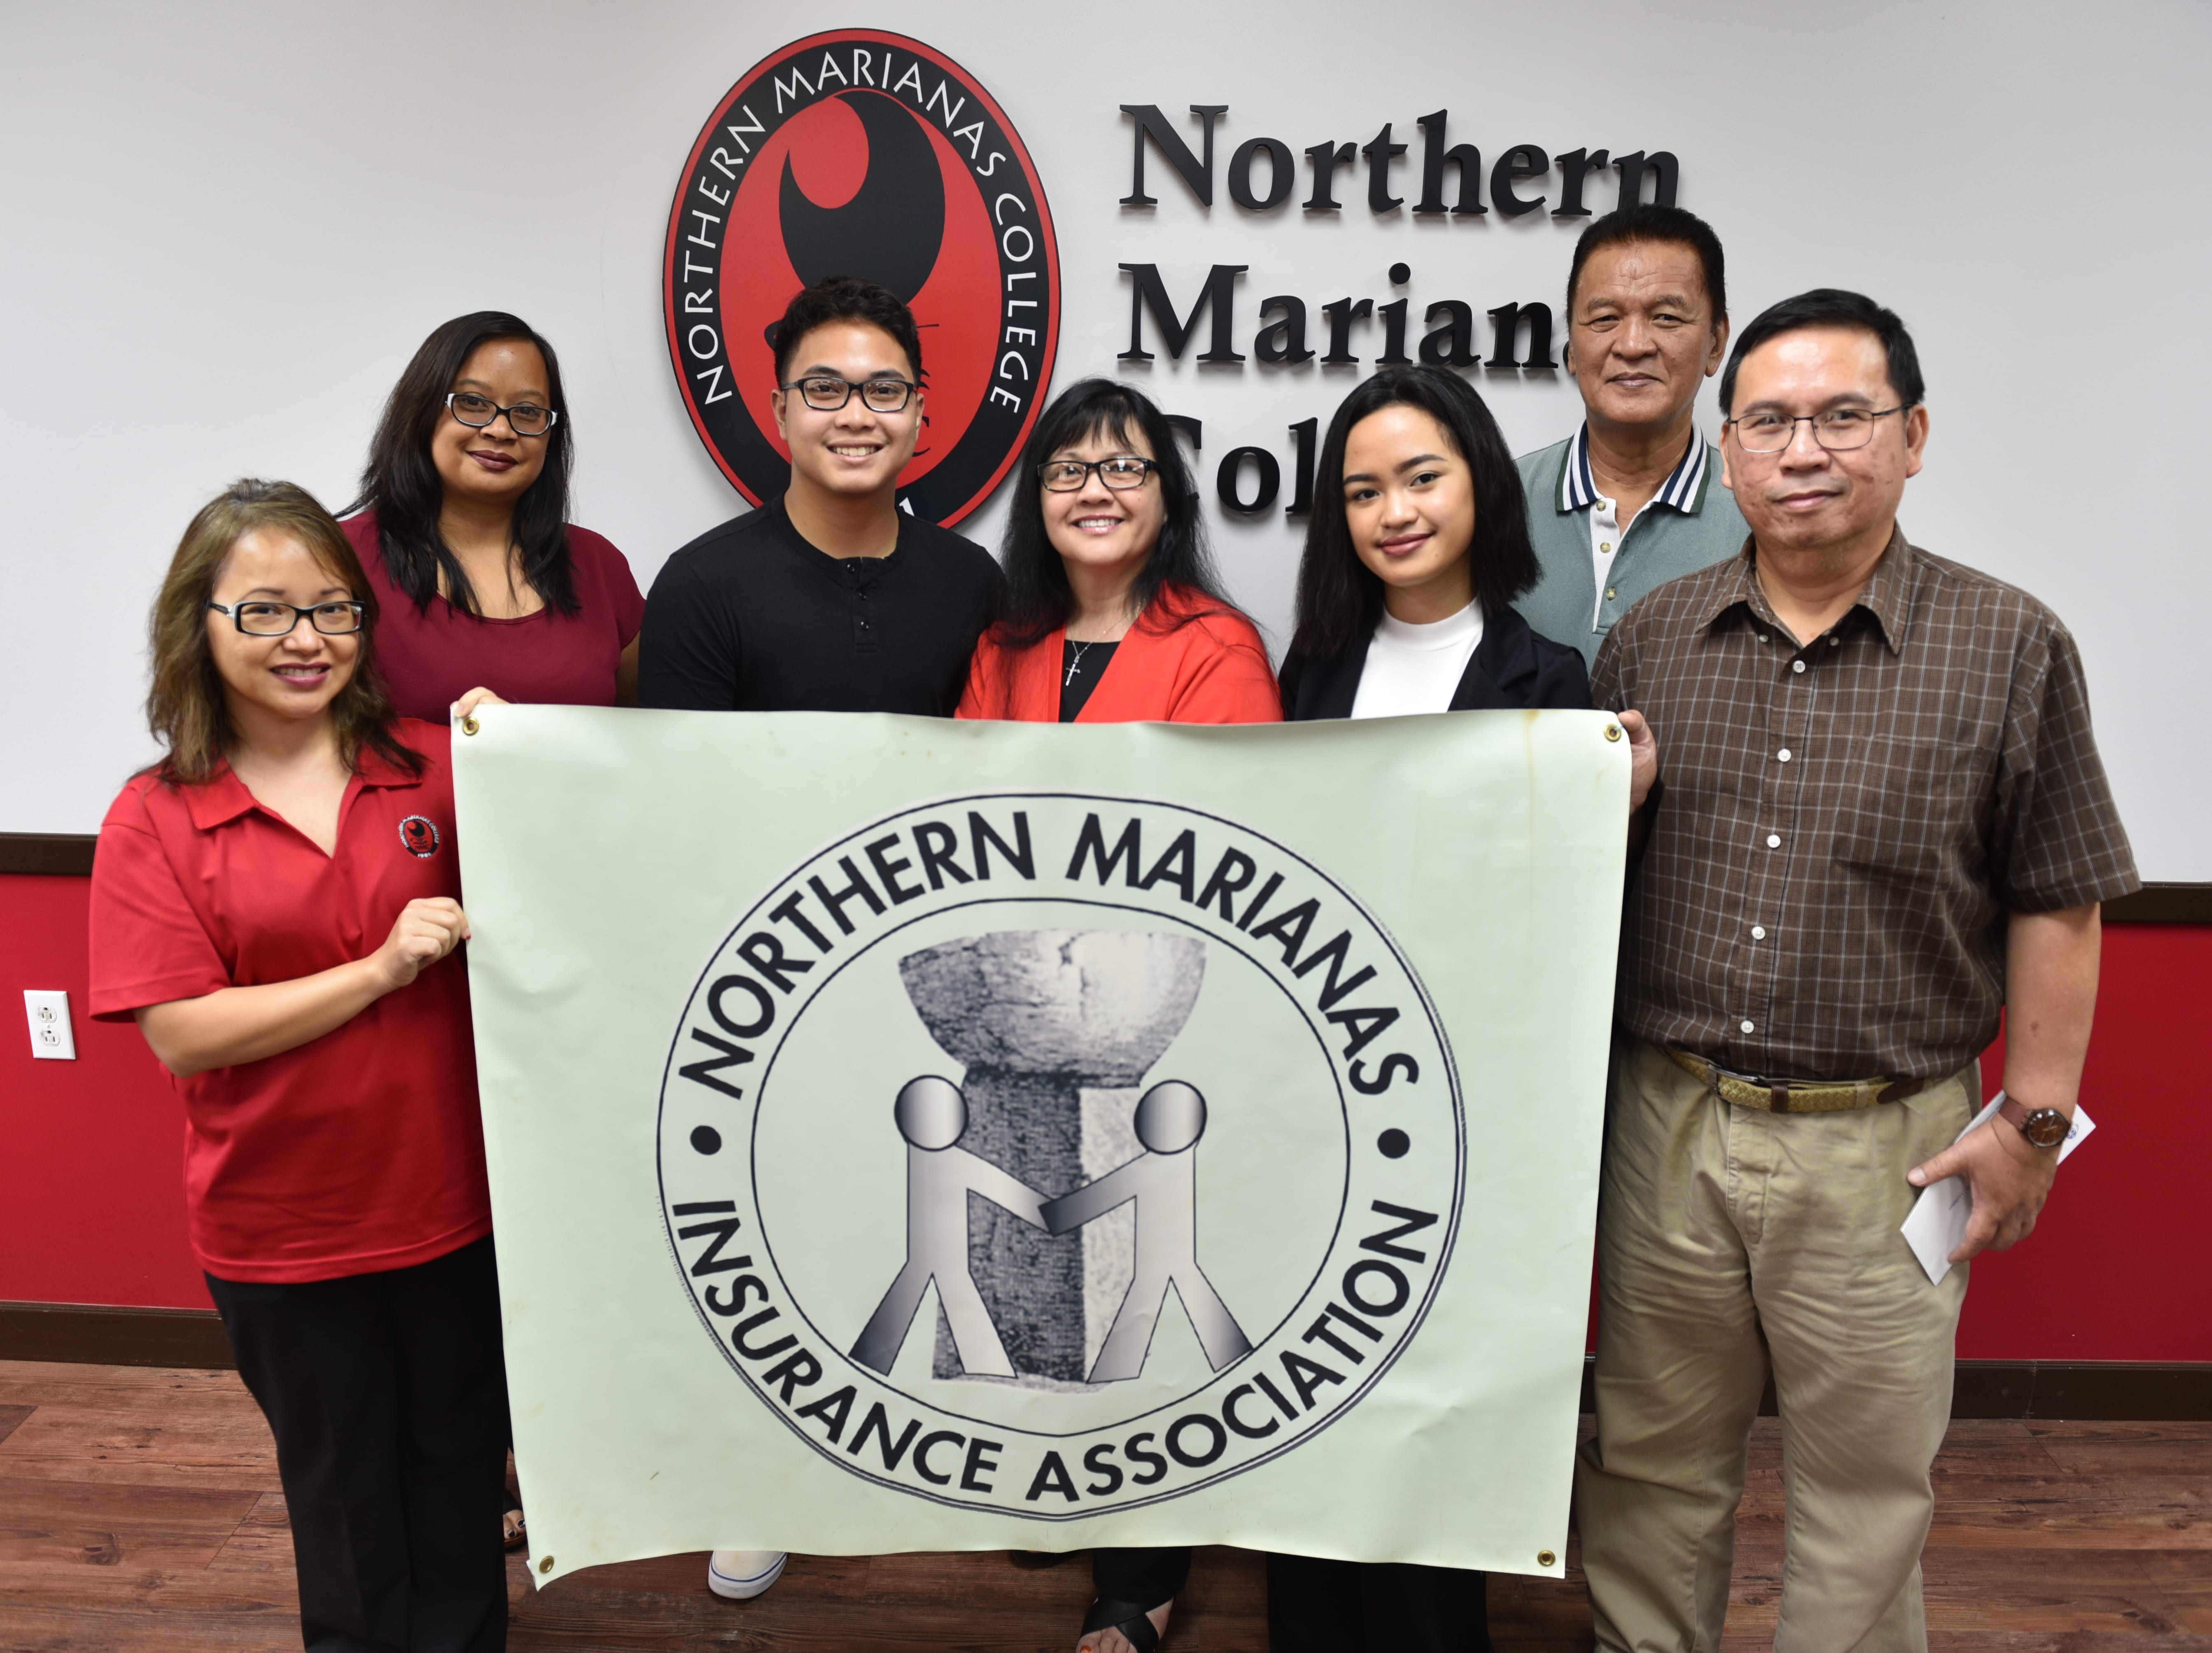 Northern Marianas Insurance Association recently awarded NMC students Michael Santos (3rd from left) and Chrystalle Lloren (3rd from right) $500 scholarships each. Also in this photo are Daisy Propst, NMC Financial Aid Director (1st from left), Jessica Sablan, Senior Underwriter of Pacifica Insurance (2nd from left), Dr. Carmen Fernandez, NMC President (center), Roberto Lloren, father of Chrystalle (2nd from right), and Gol Corpuz, General Manager of Century Insurance (1st from right).